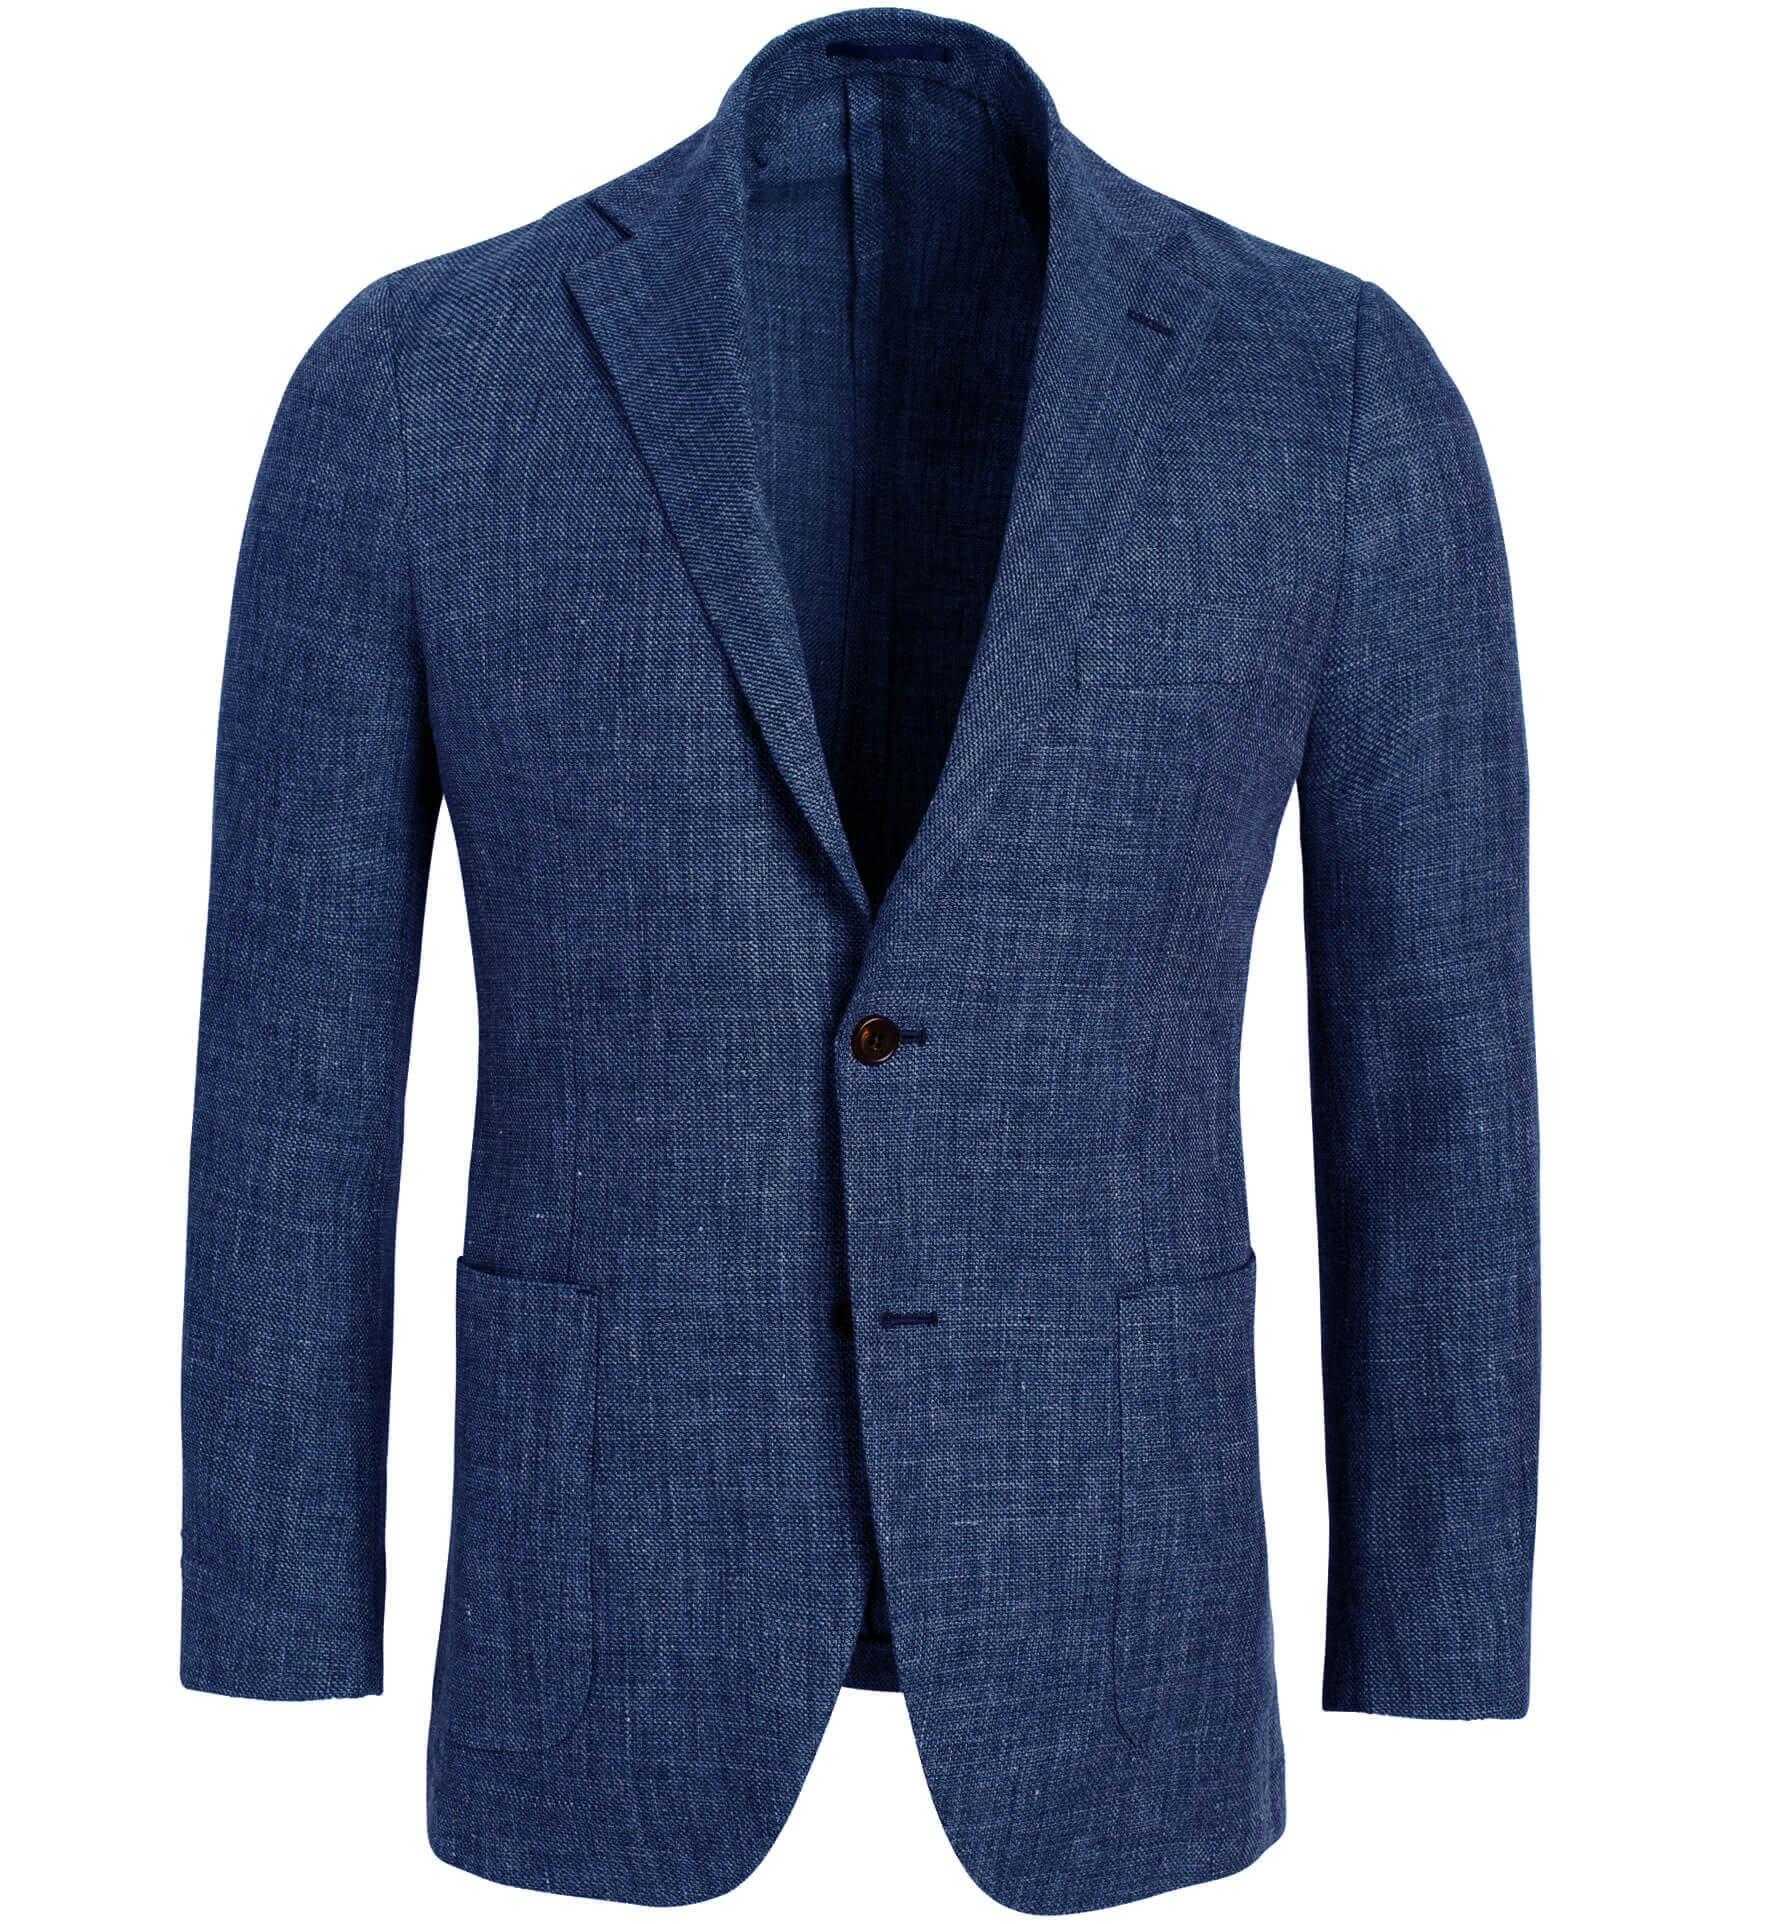 Zoom Image of Bedford Ocean Blue Linen and Wool Hopsack Jacket